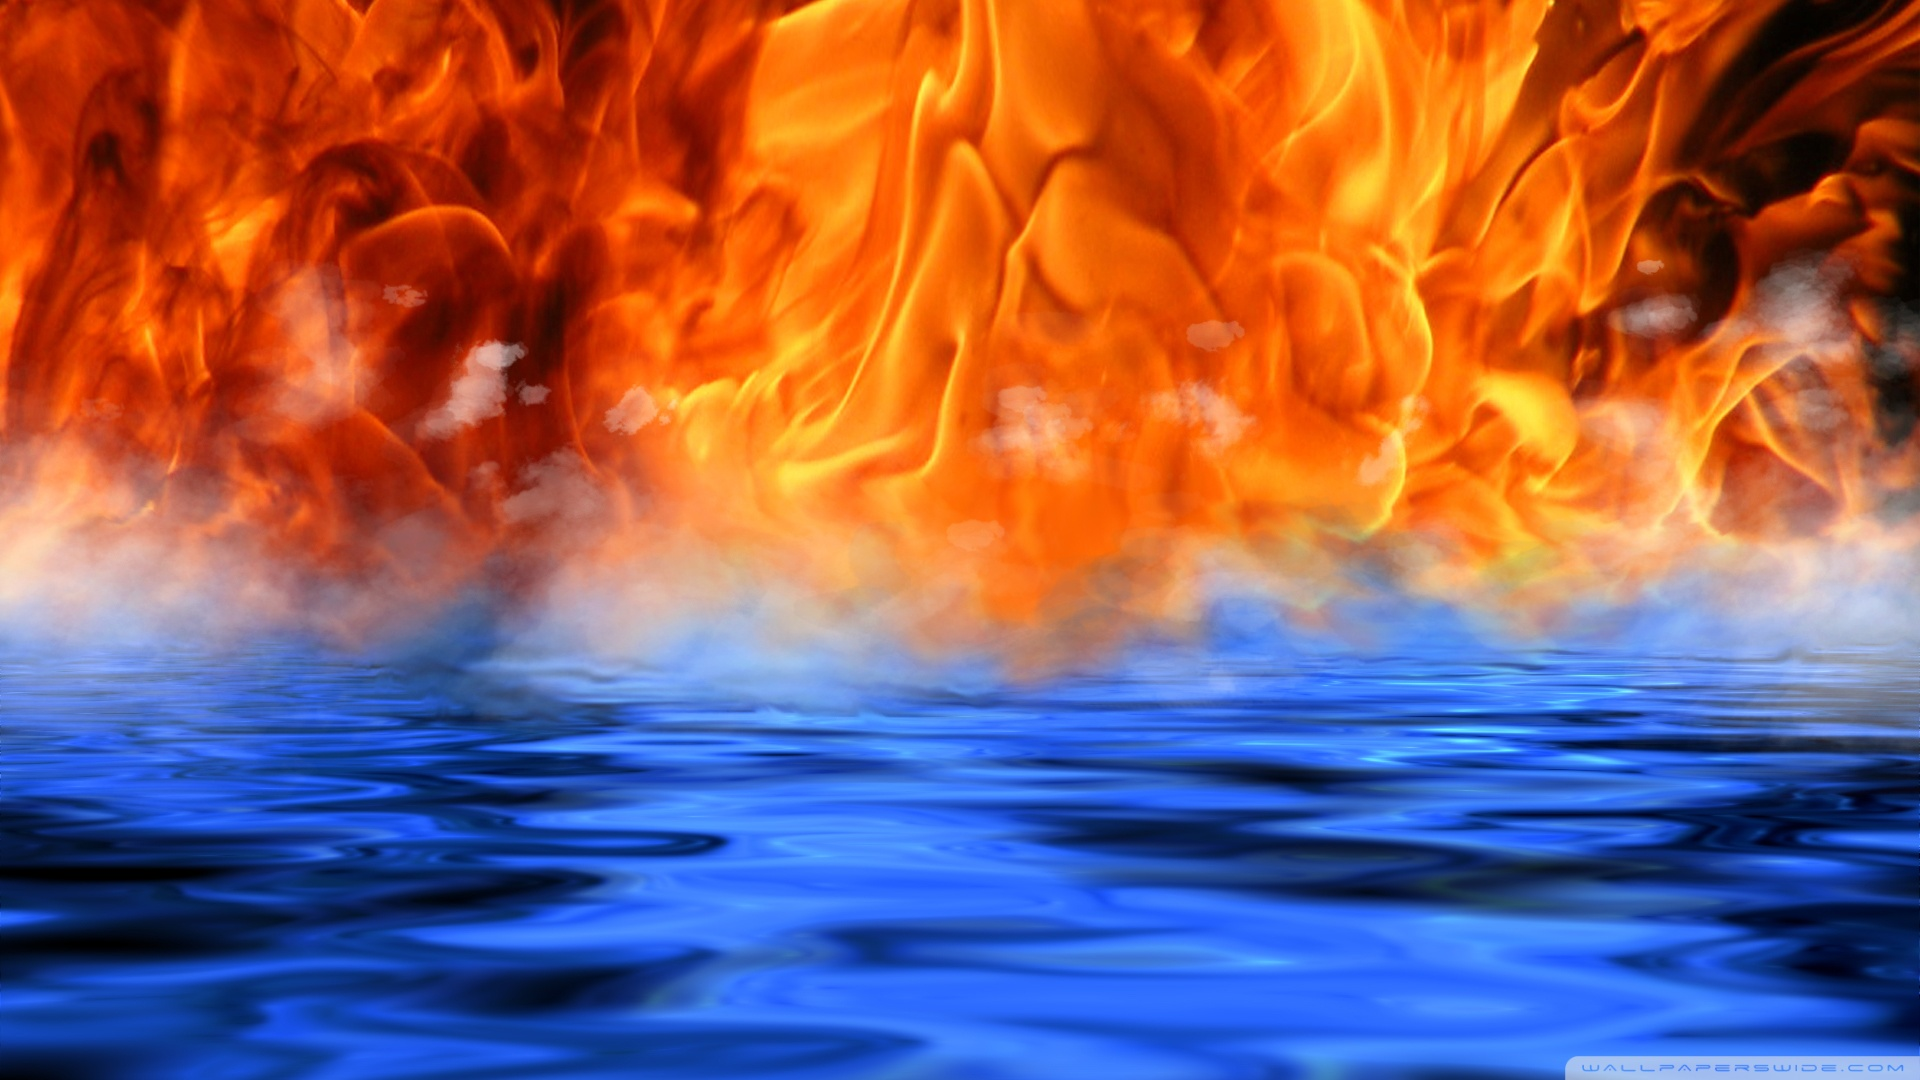 Fire Water Meet Wallpaper 1920x1080 Fire Water Meet 1920x1080